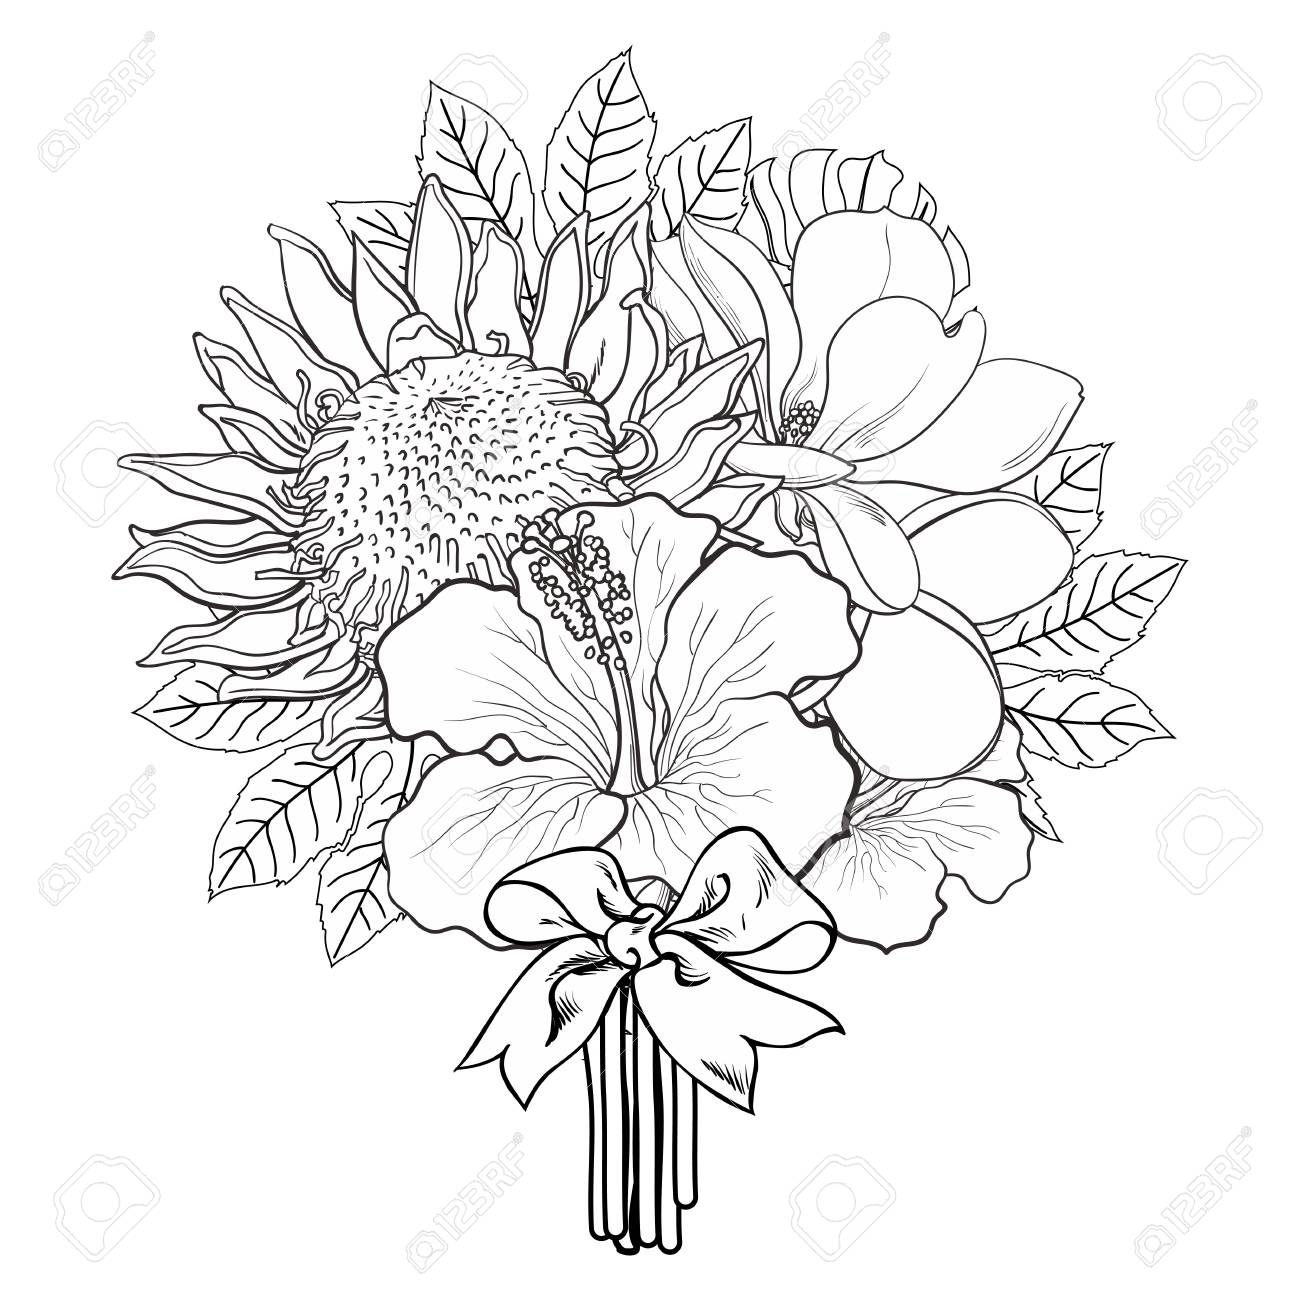 Tropical flowers and palm leaves in bouquet with bow in sketch style isolated on white background